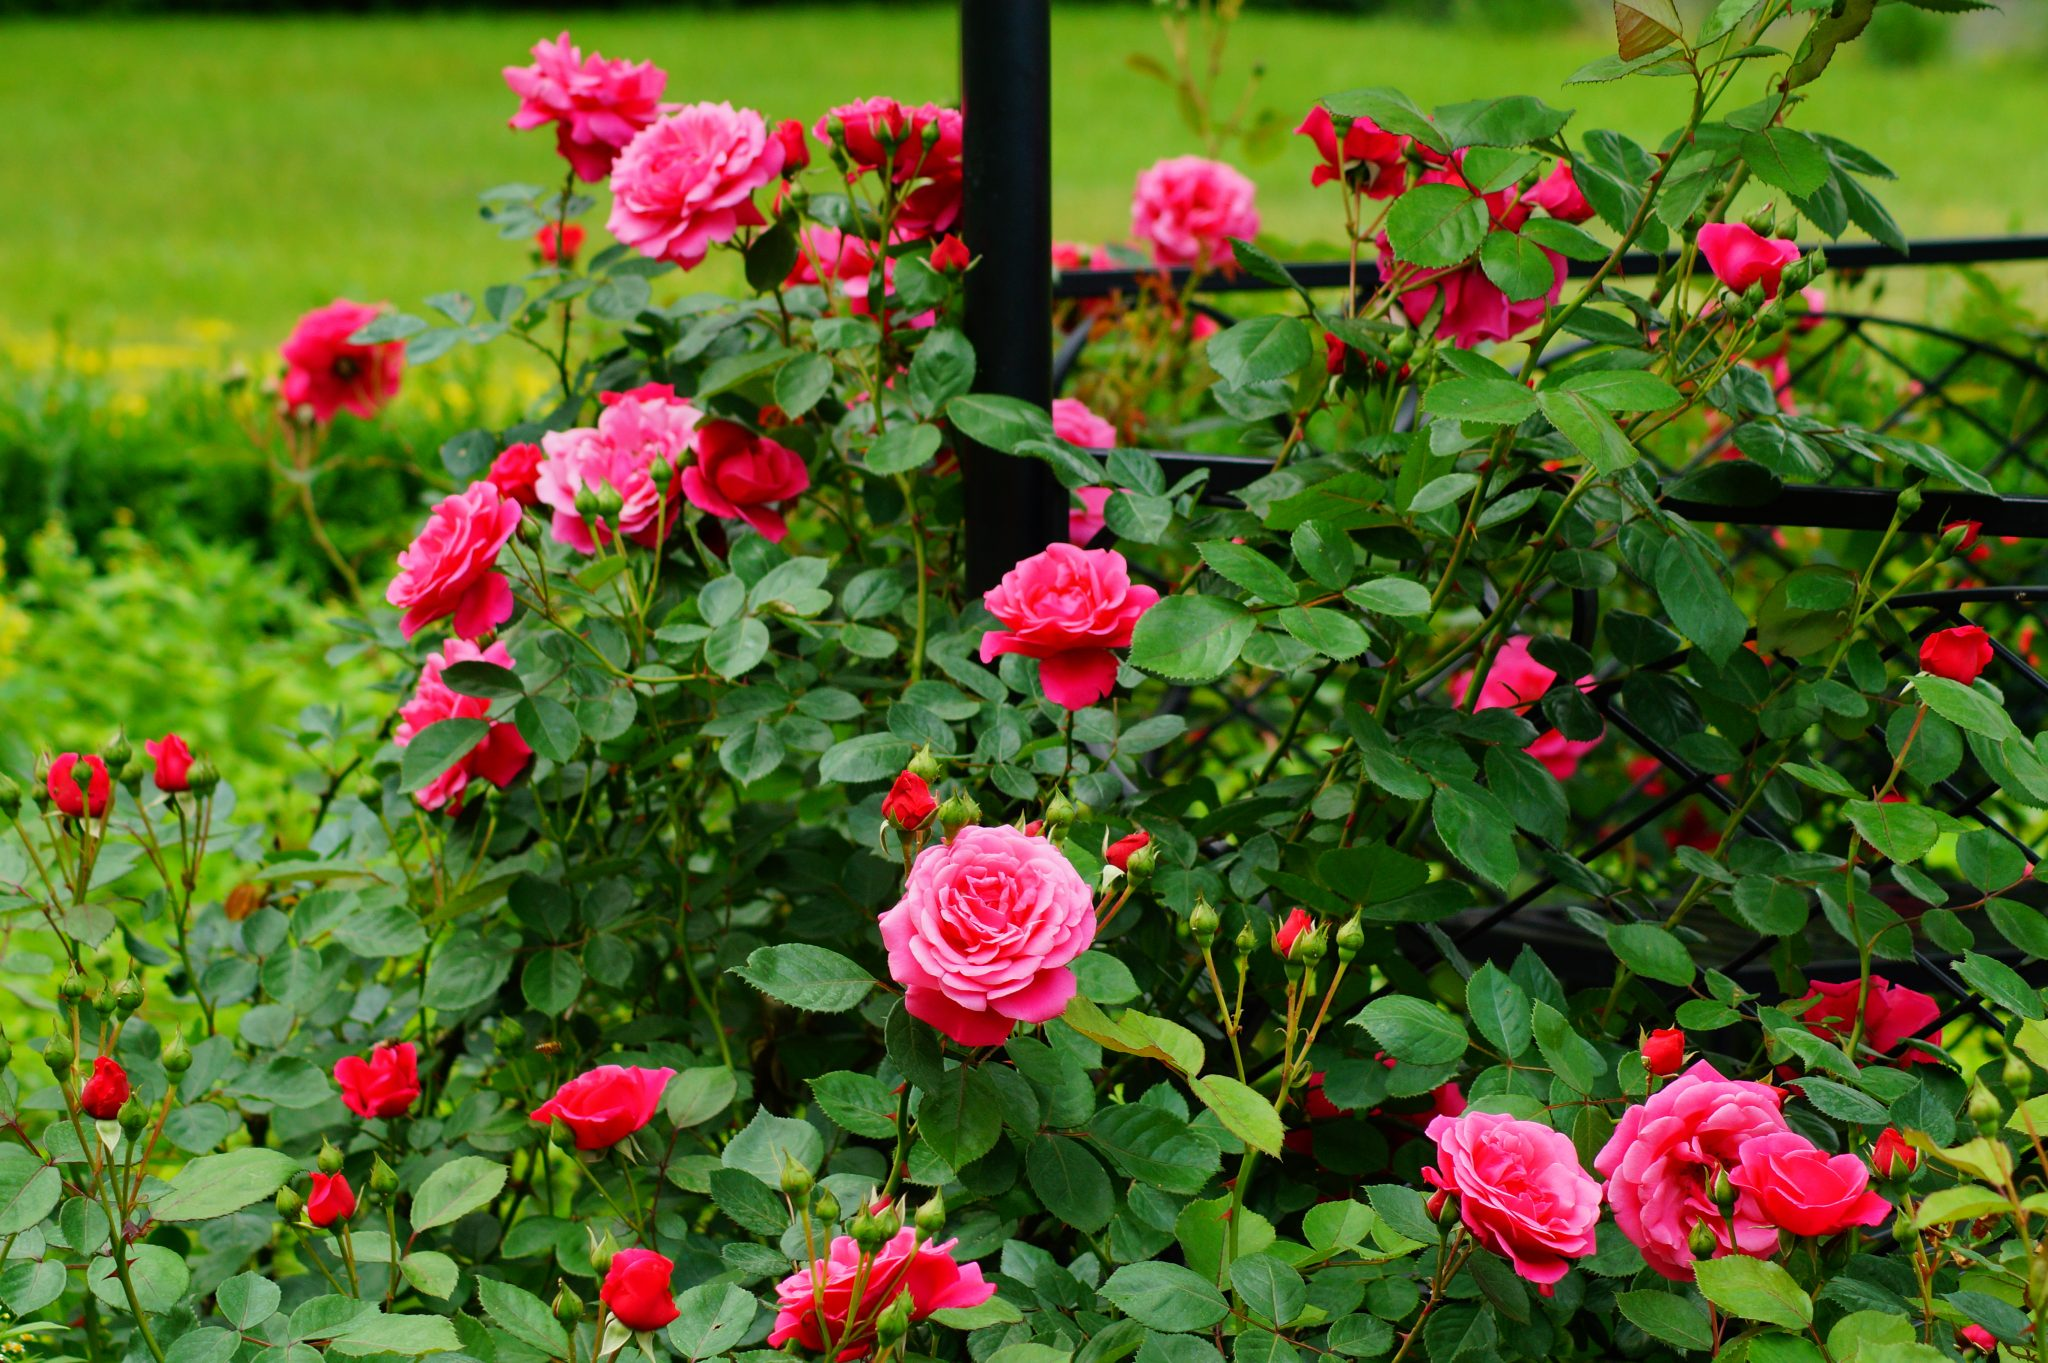 Pruning Roses Promotes Vigorous Growth Alabama Cooperative